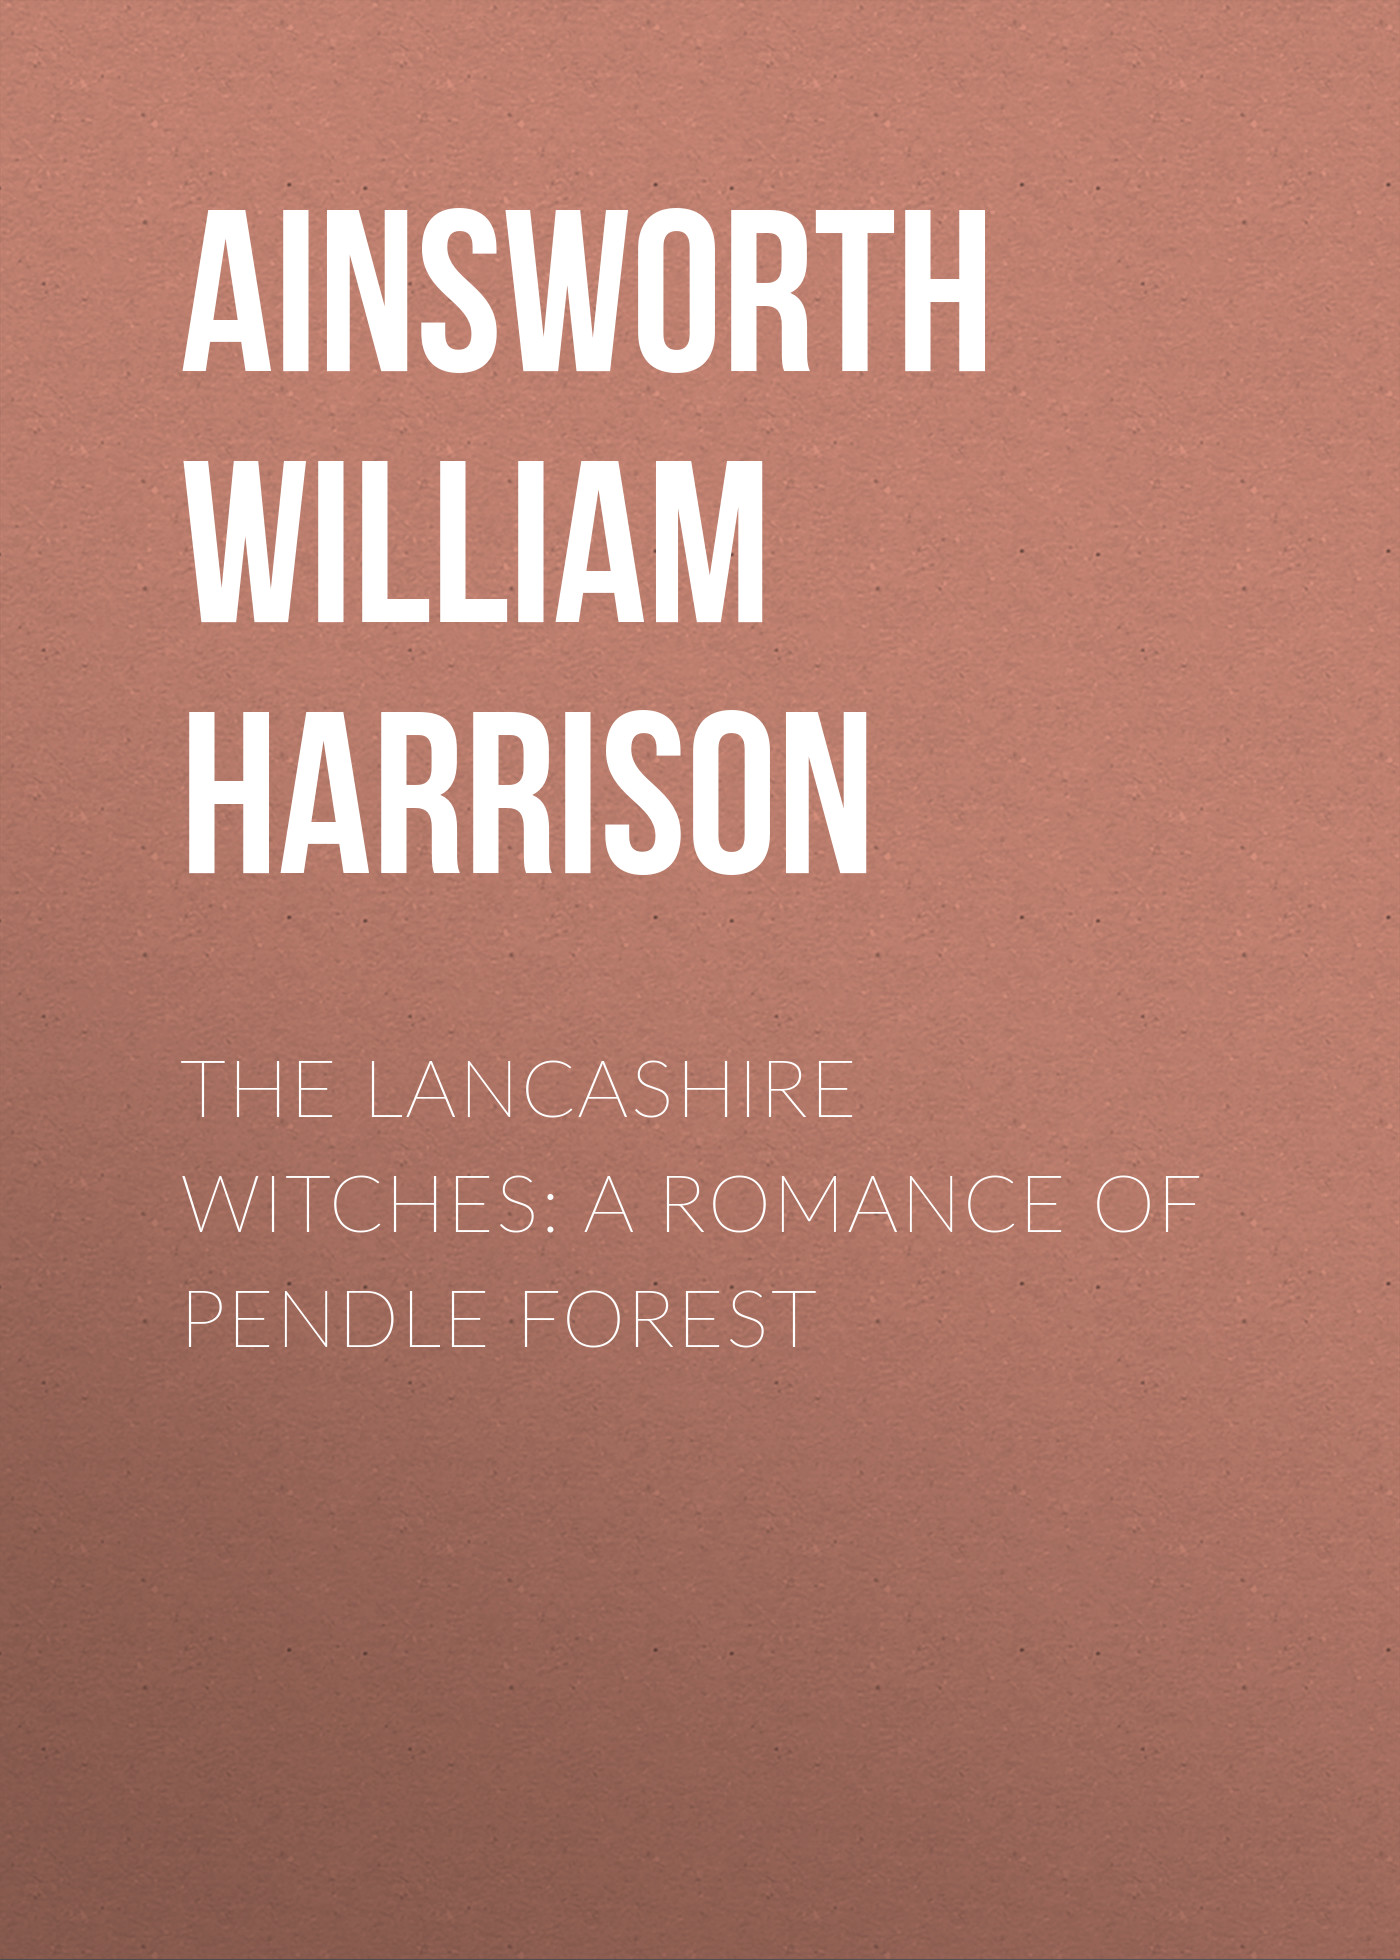 Ainsworth William Harrison The Lancashire Witches: A Romance of Pendle Forest цена в Москве и Питере